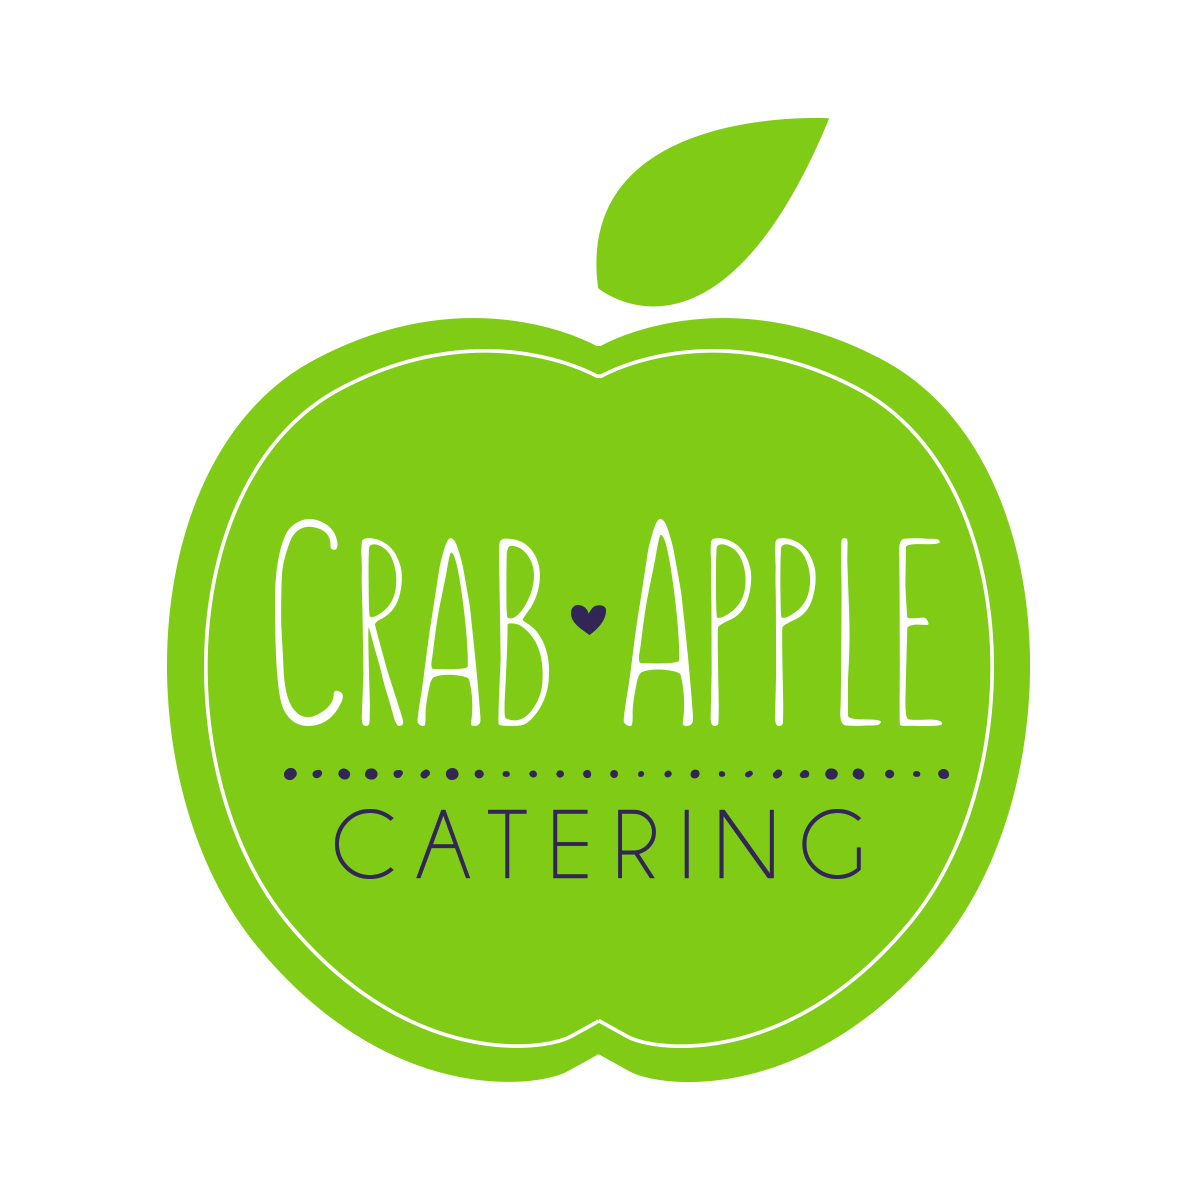 Crab Apple Catering